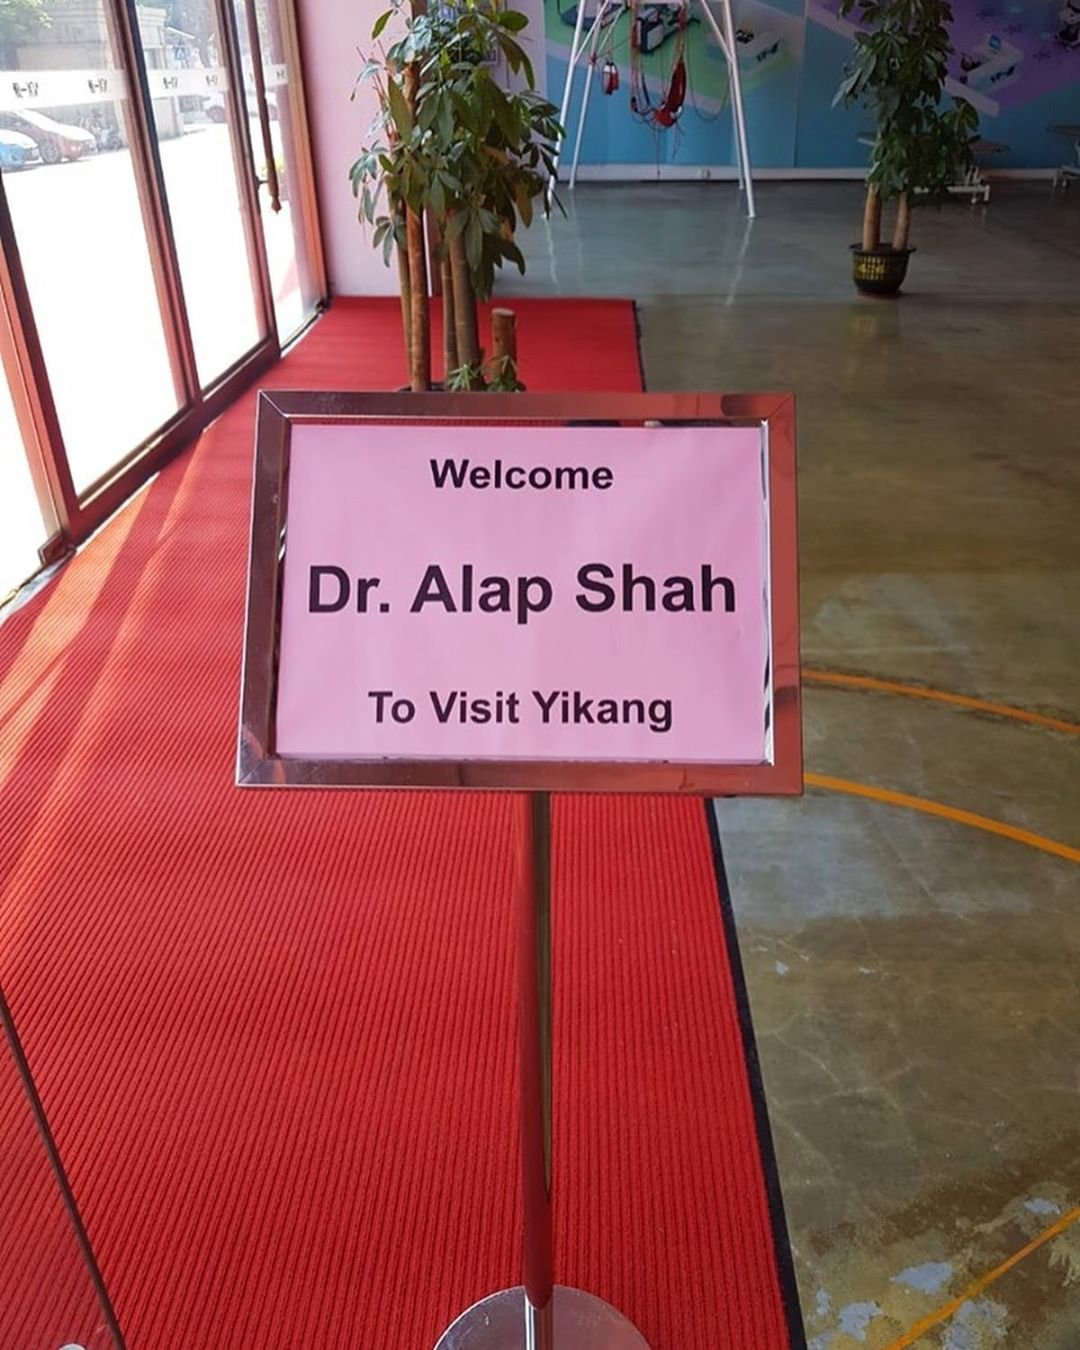 "Xie Xie China for a warm welcome and hospitality... Our Founder & Director Dr. Aalap Shah had a wonderful discussion on ""Advances in Neuro Rehab Technologies"" with Physical Therapists of Macau & Lady Jean Xing.  Time for New Beginning & Association!  #Newbeginning #Happyfaces #Newassociation #Neurorehabtechnologies #MissionHealth #SpecializedPhysio #Trendsetter  #NeuroPlasticity #AbilityClinic #RehabSuites #GlobalTraining #MovementIsLife"